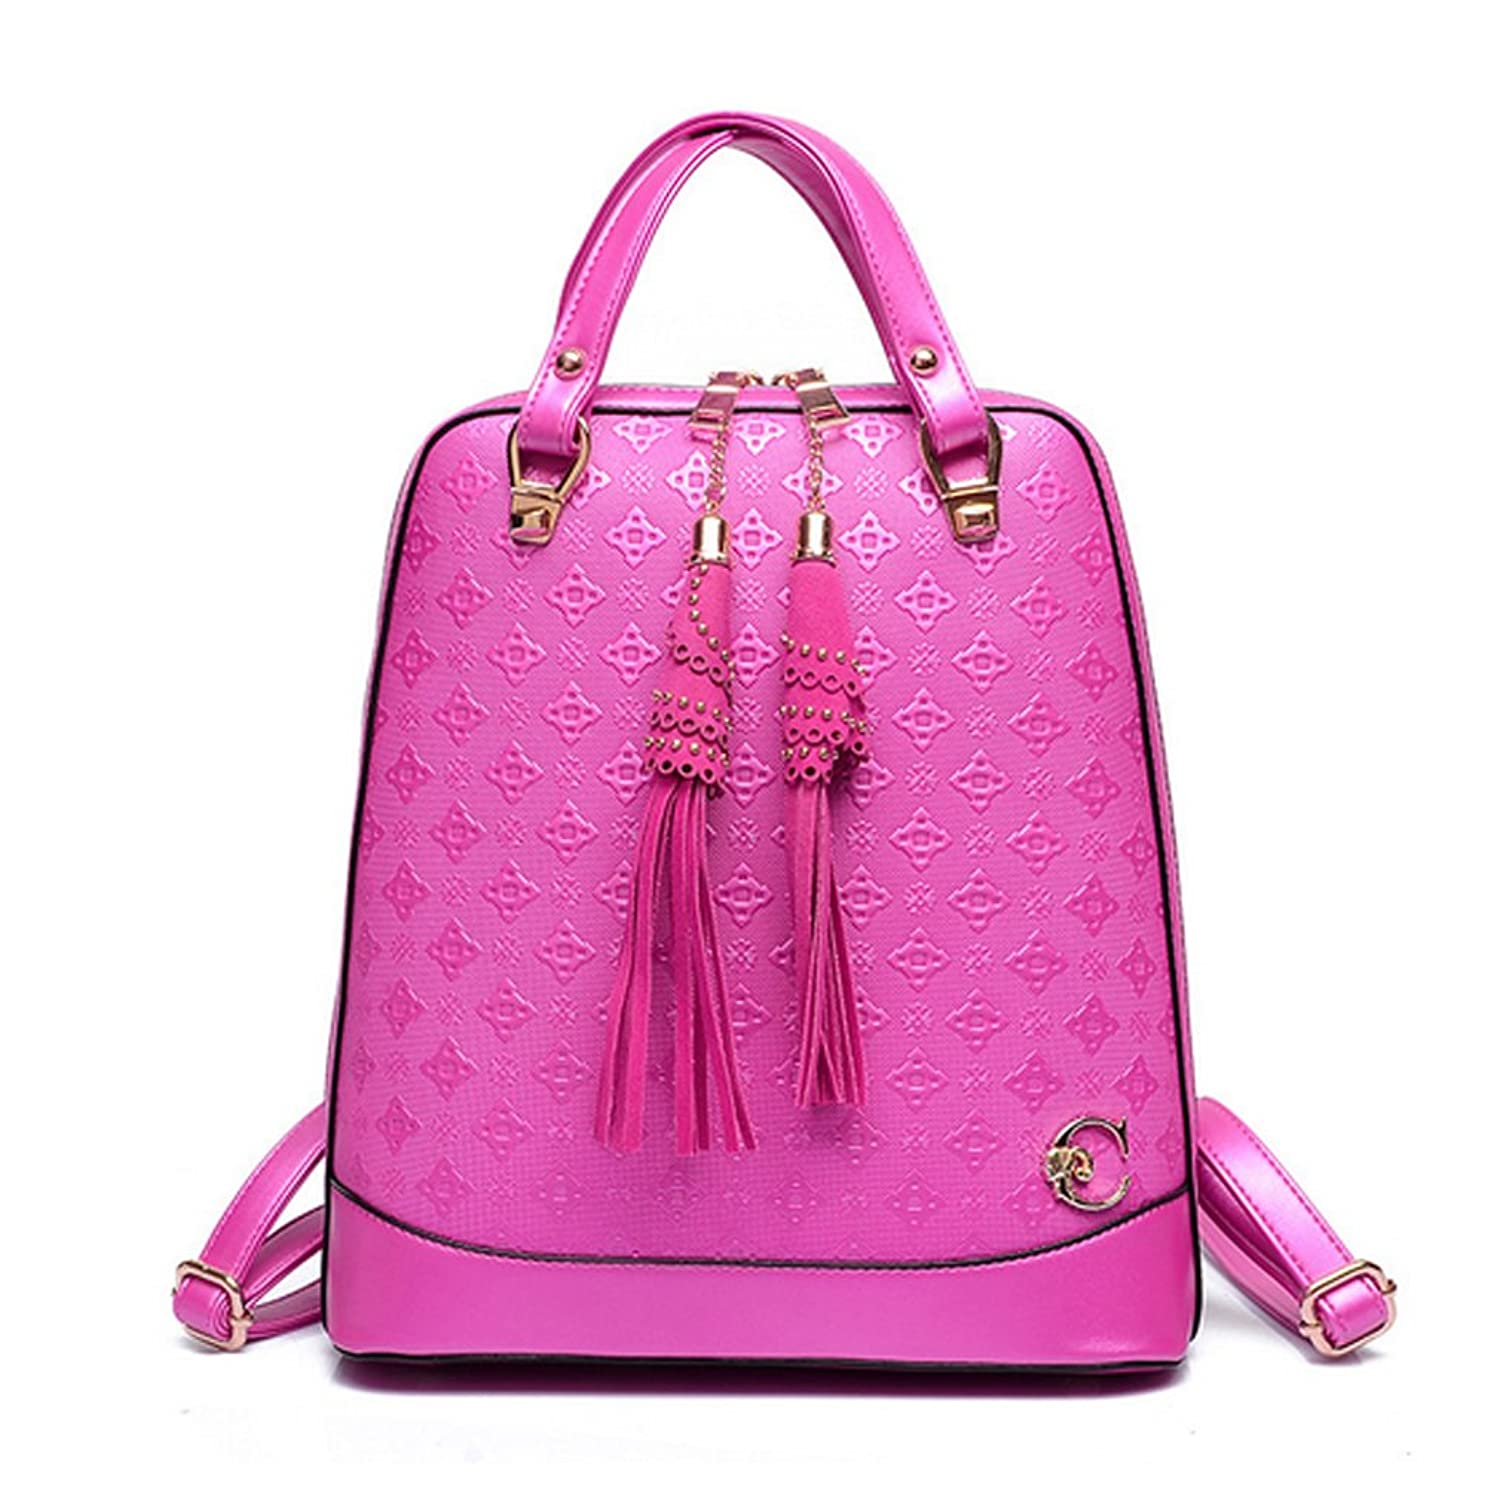 LOMOL Girls Fashion Cute Student Style High Quality Leather Tote Top-handle Handbag Backpack